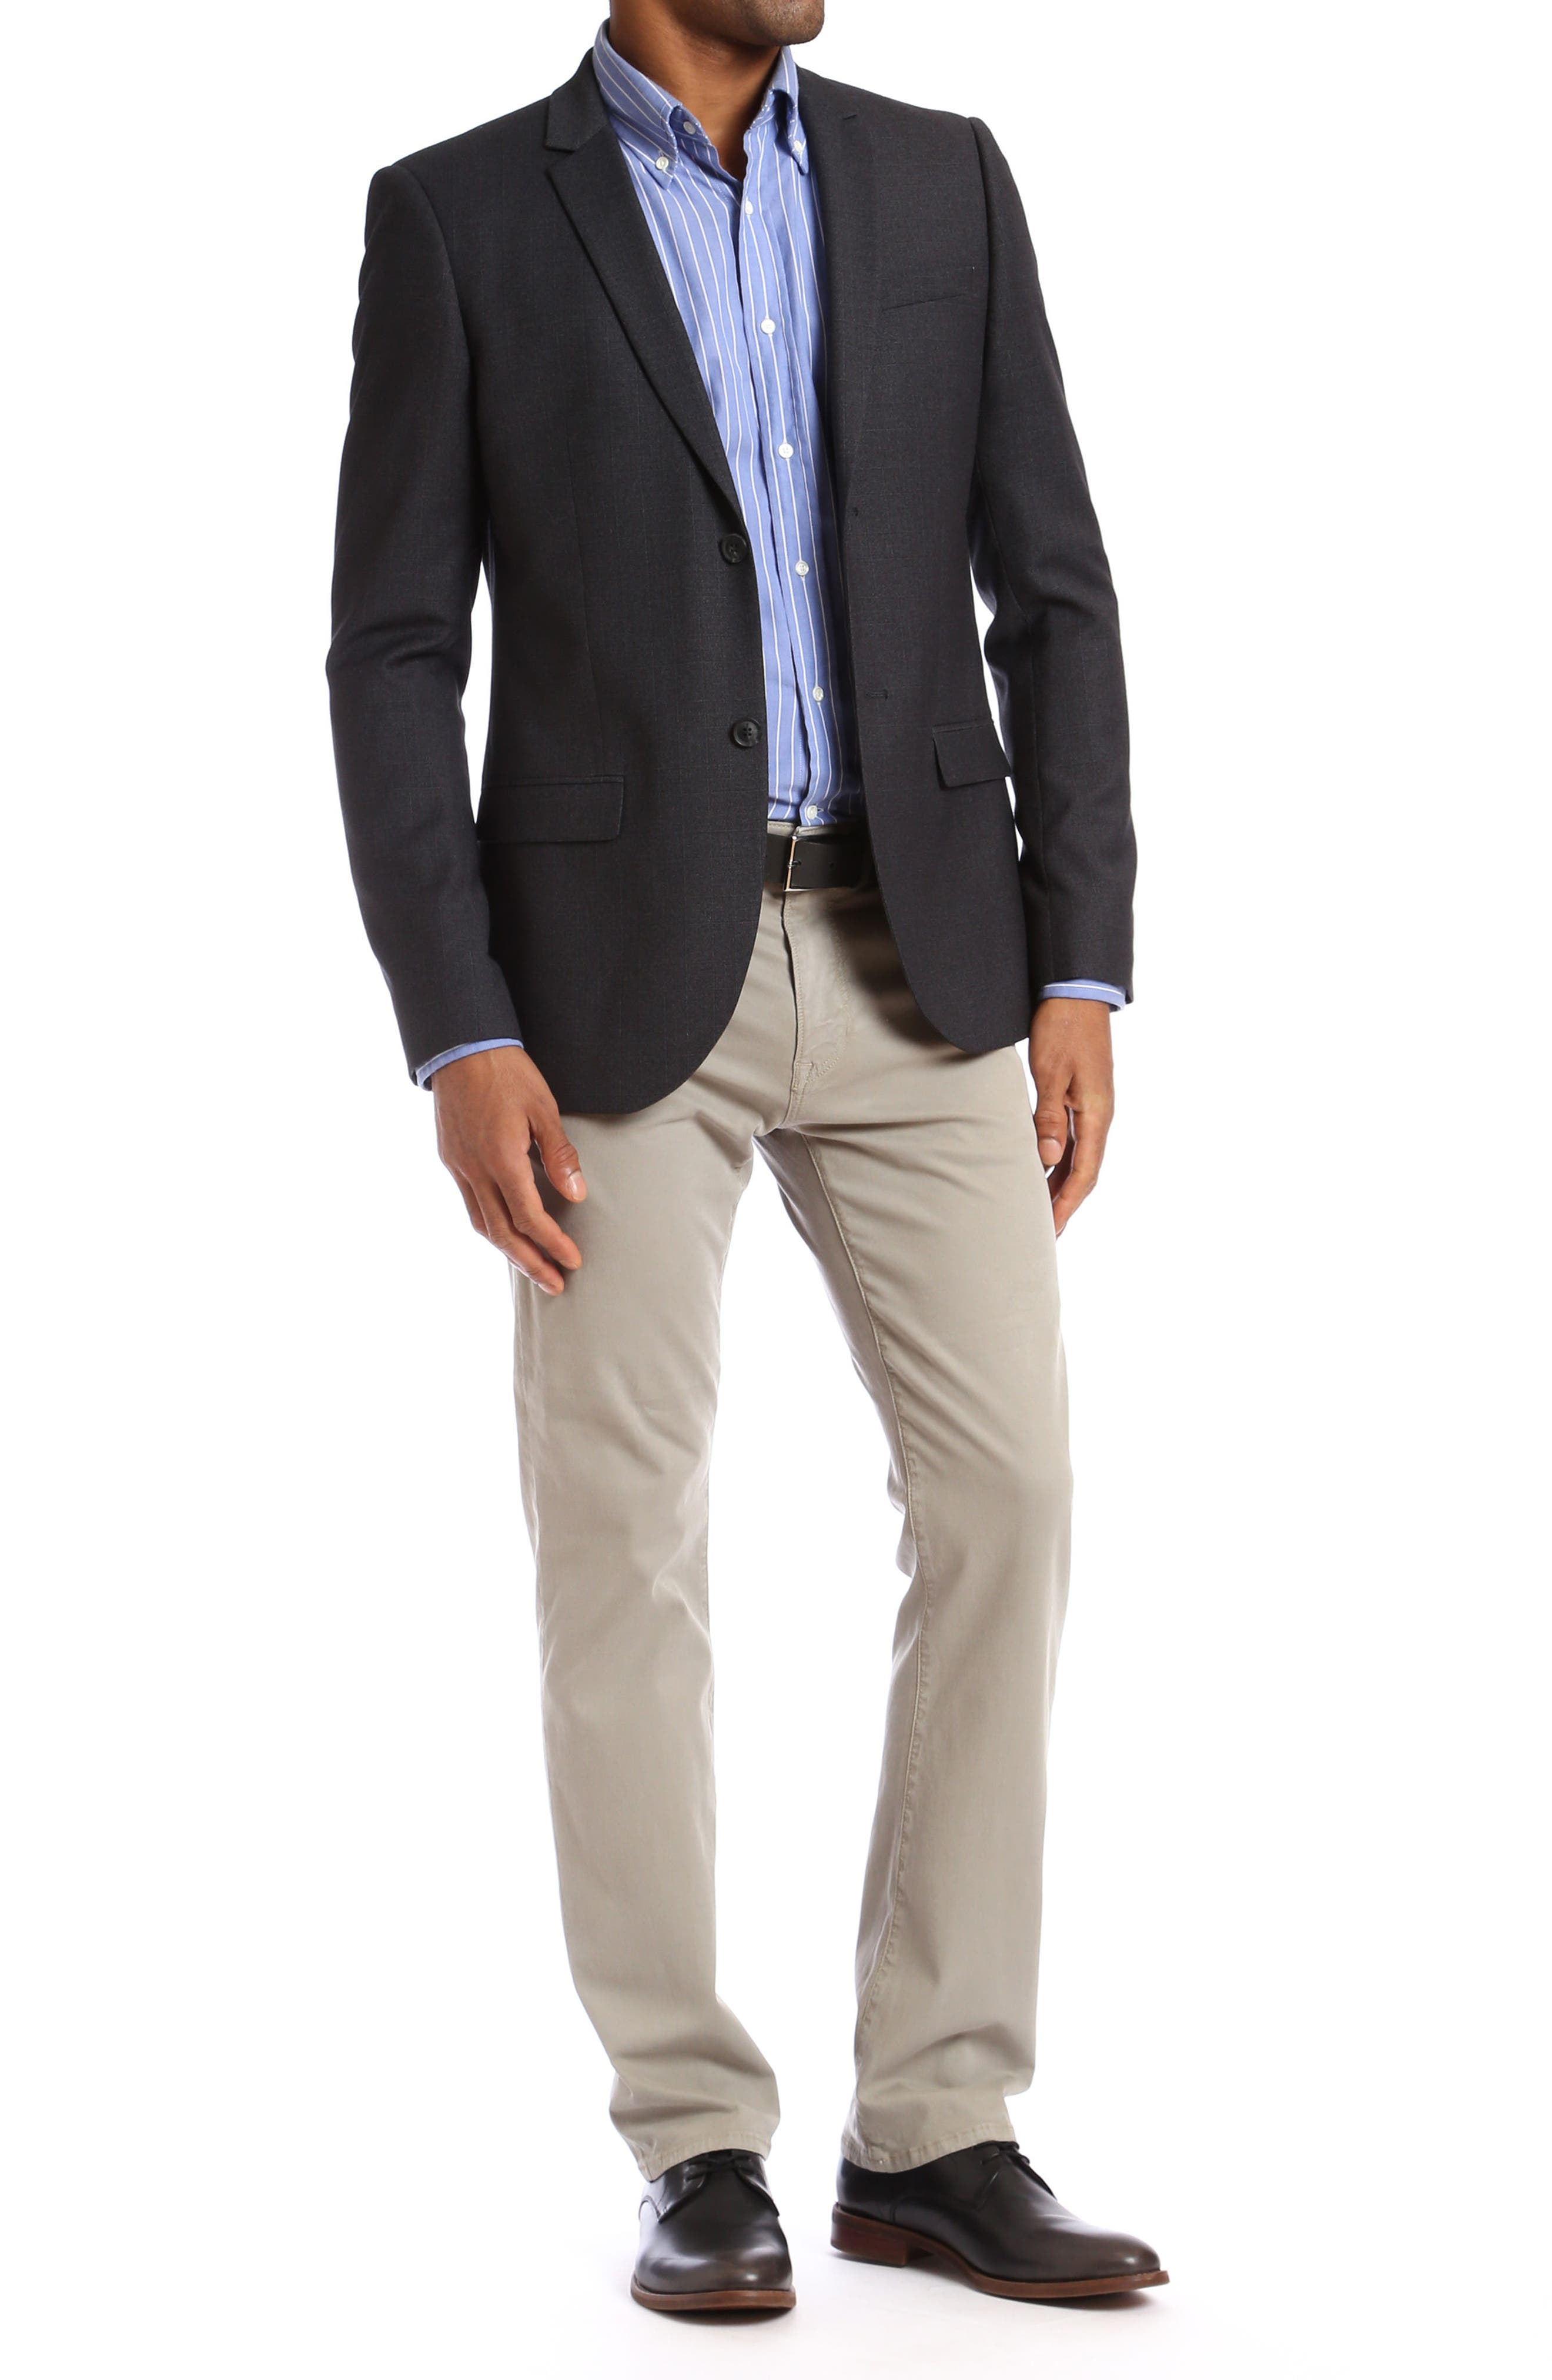 Charisma Relaxed Fit Jeans,                             Alternate thumbnail 4, color,                             FINE TWILL